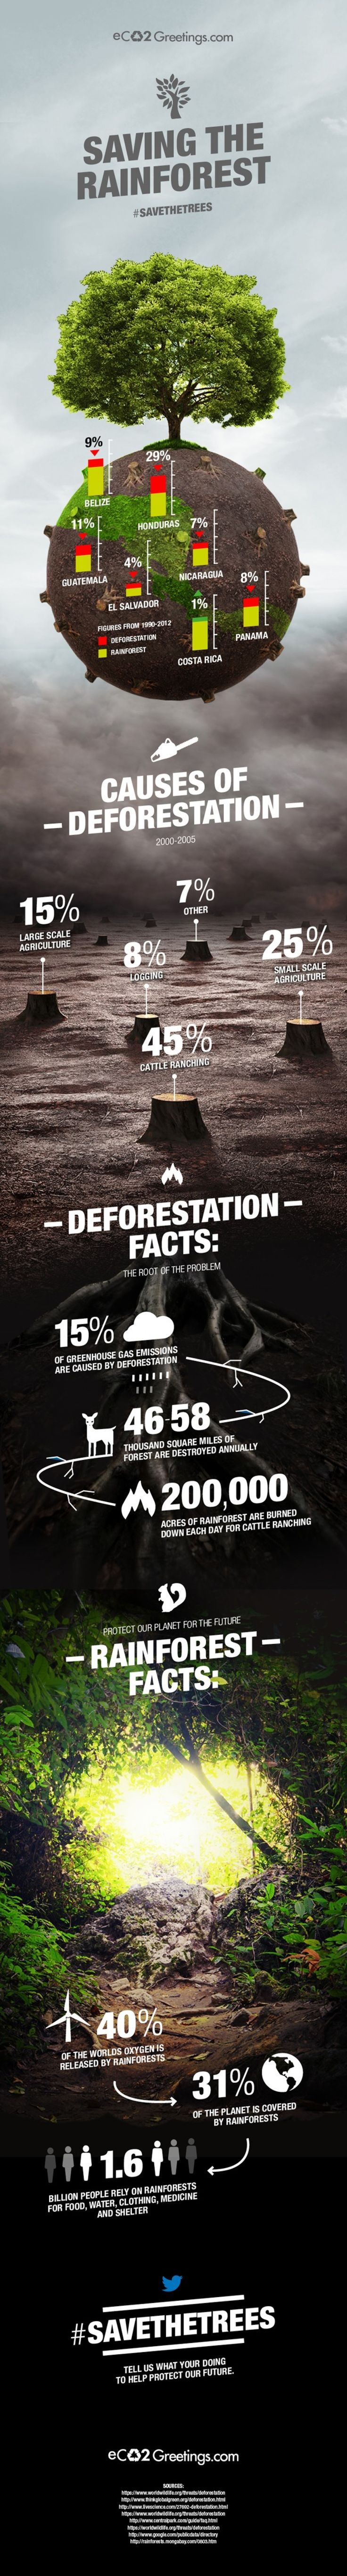 This image shows the main causes of deforestation - including cattle ranching, agriculture and logging.